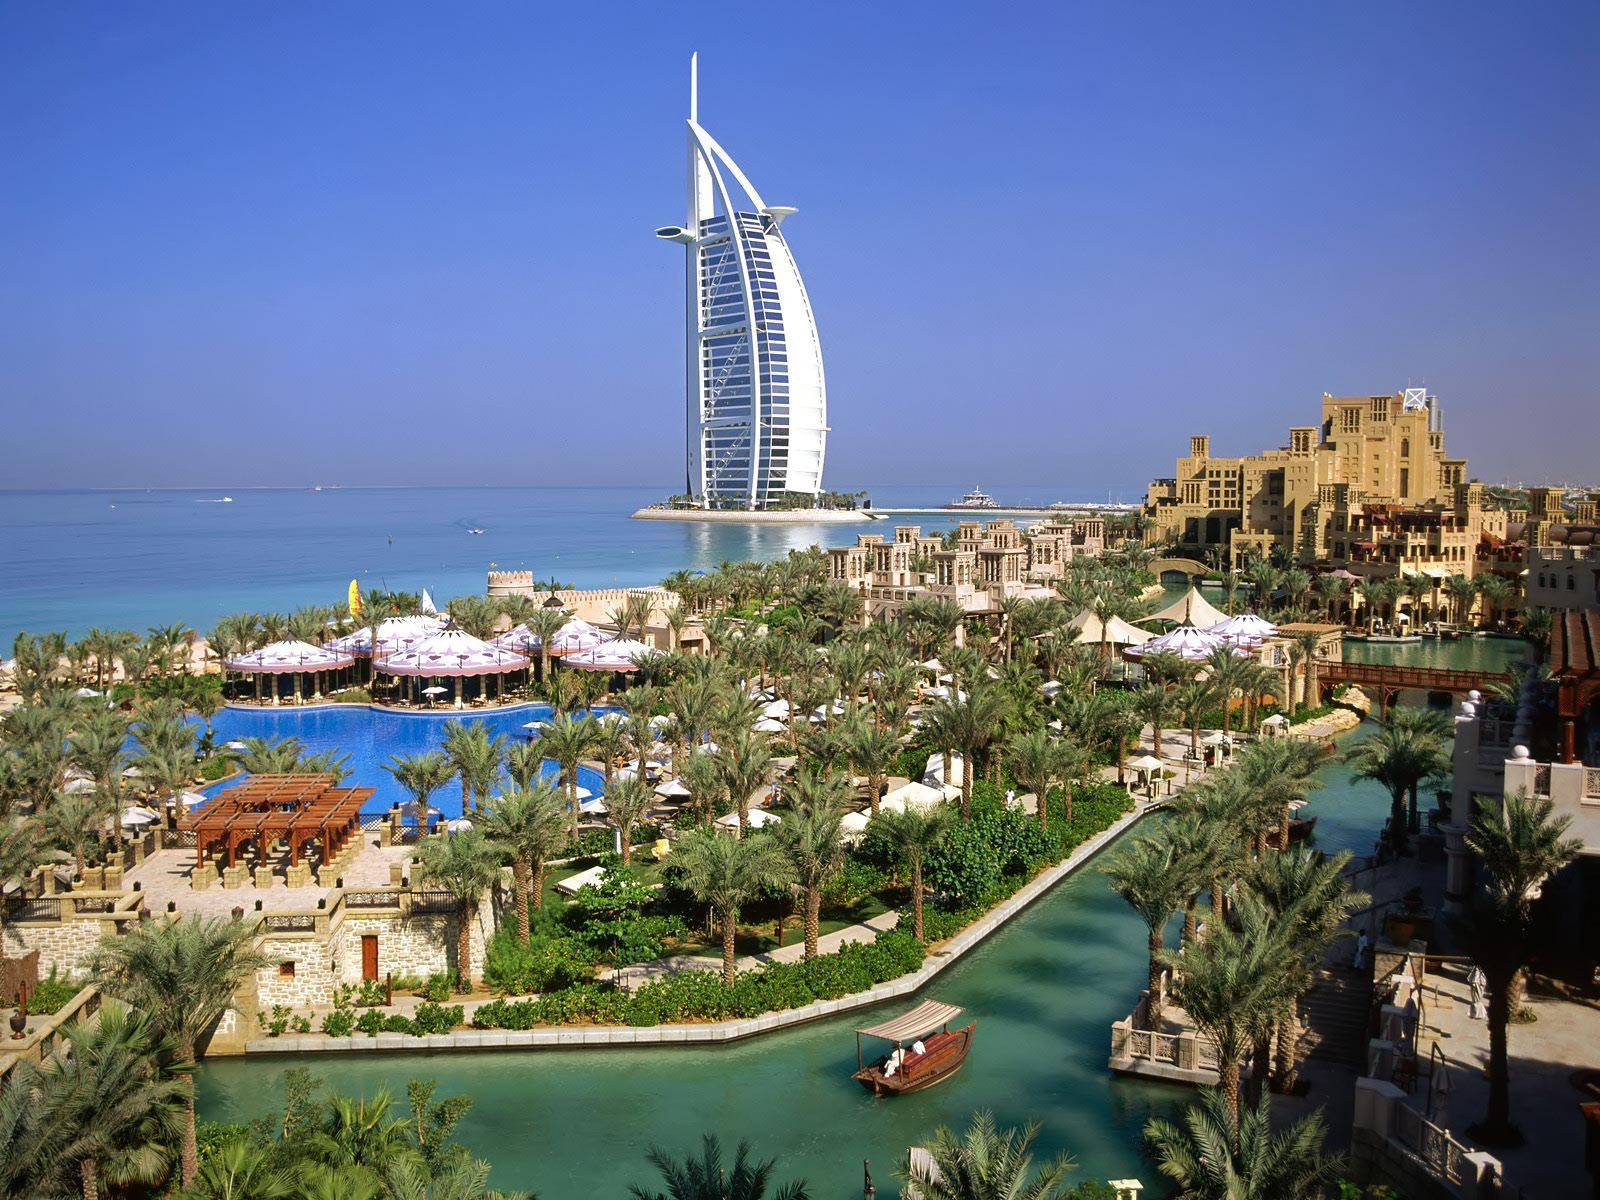 Burj al arab dubai tourist destinations for Hotel burj al arab